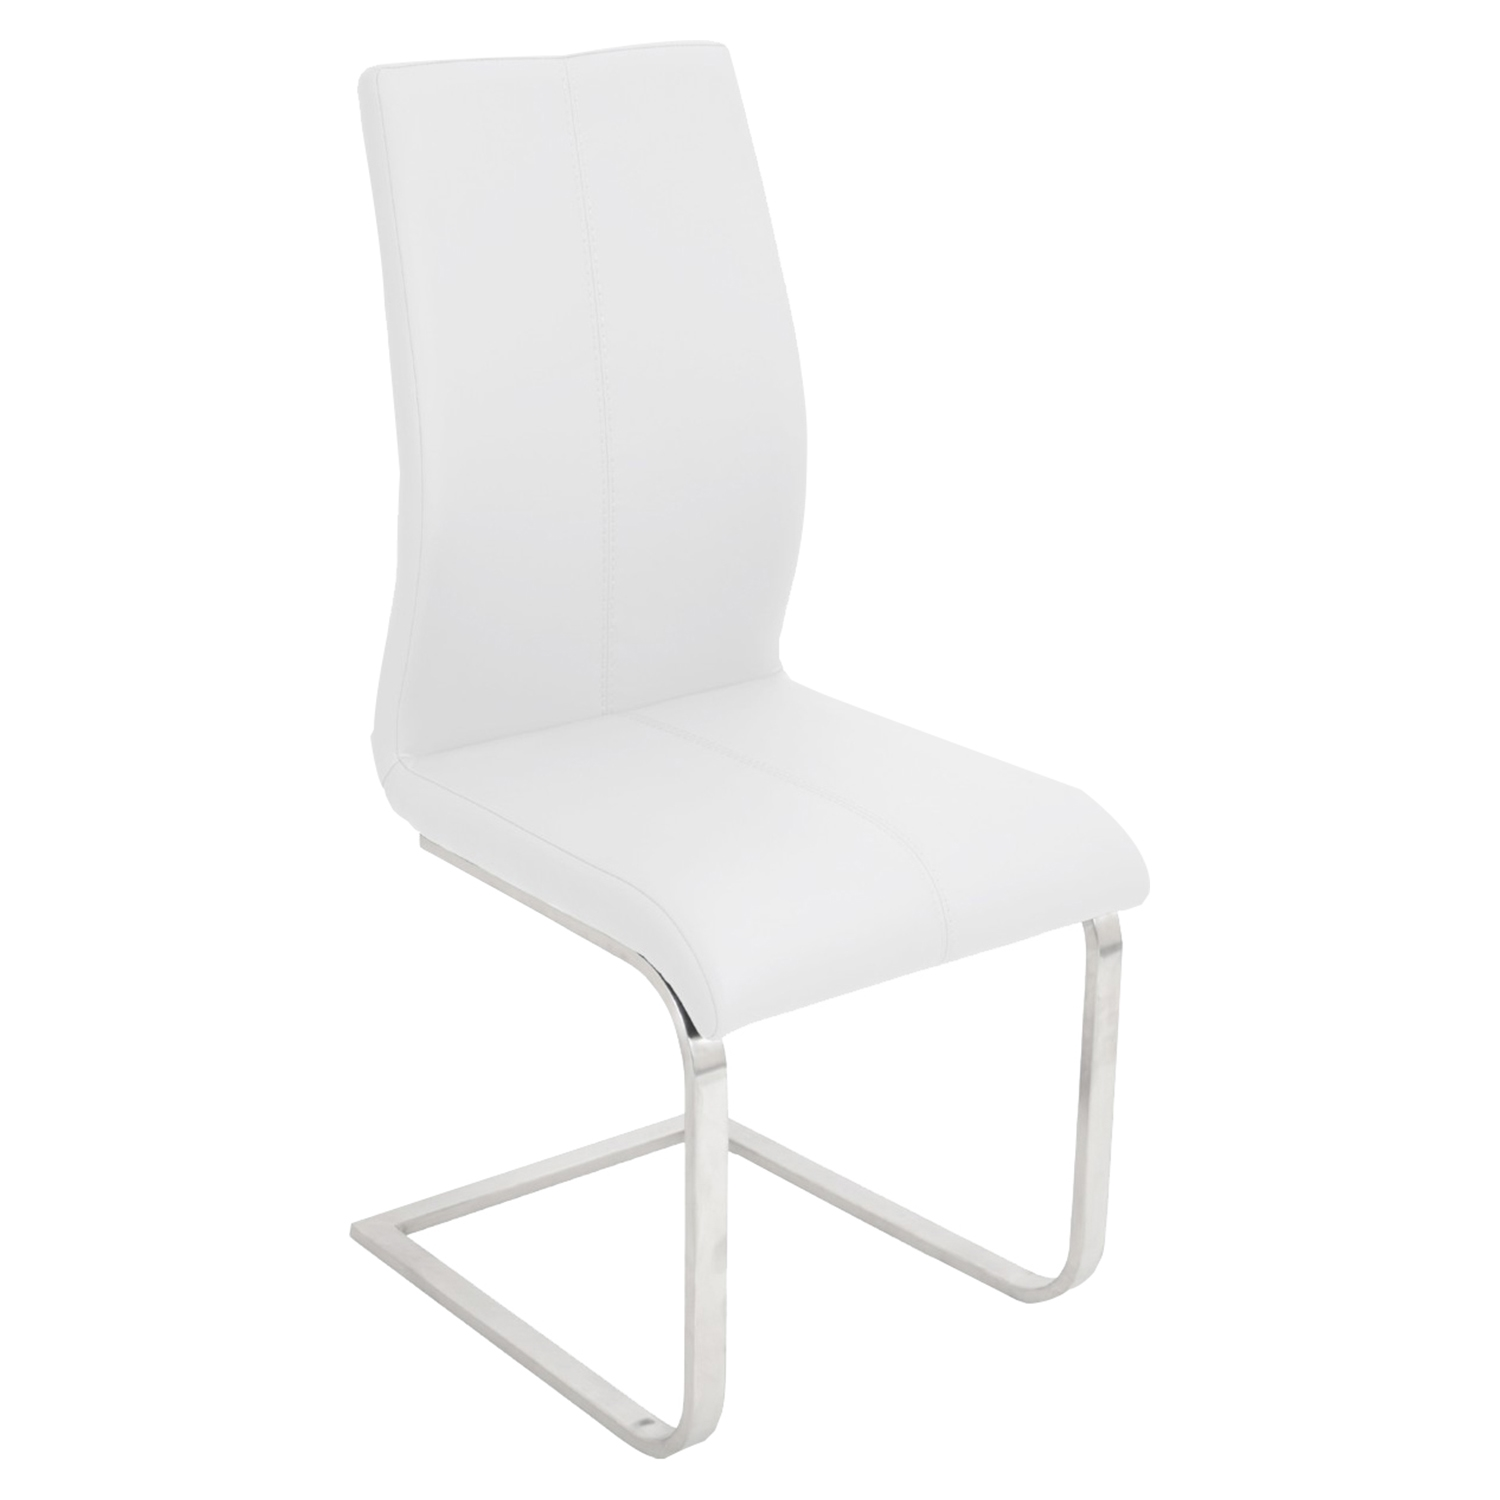 Dynasty Dining Chair - White (Set of 2)